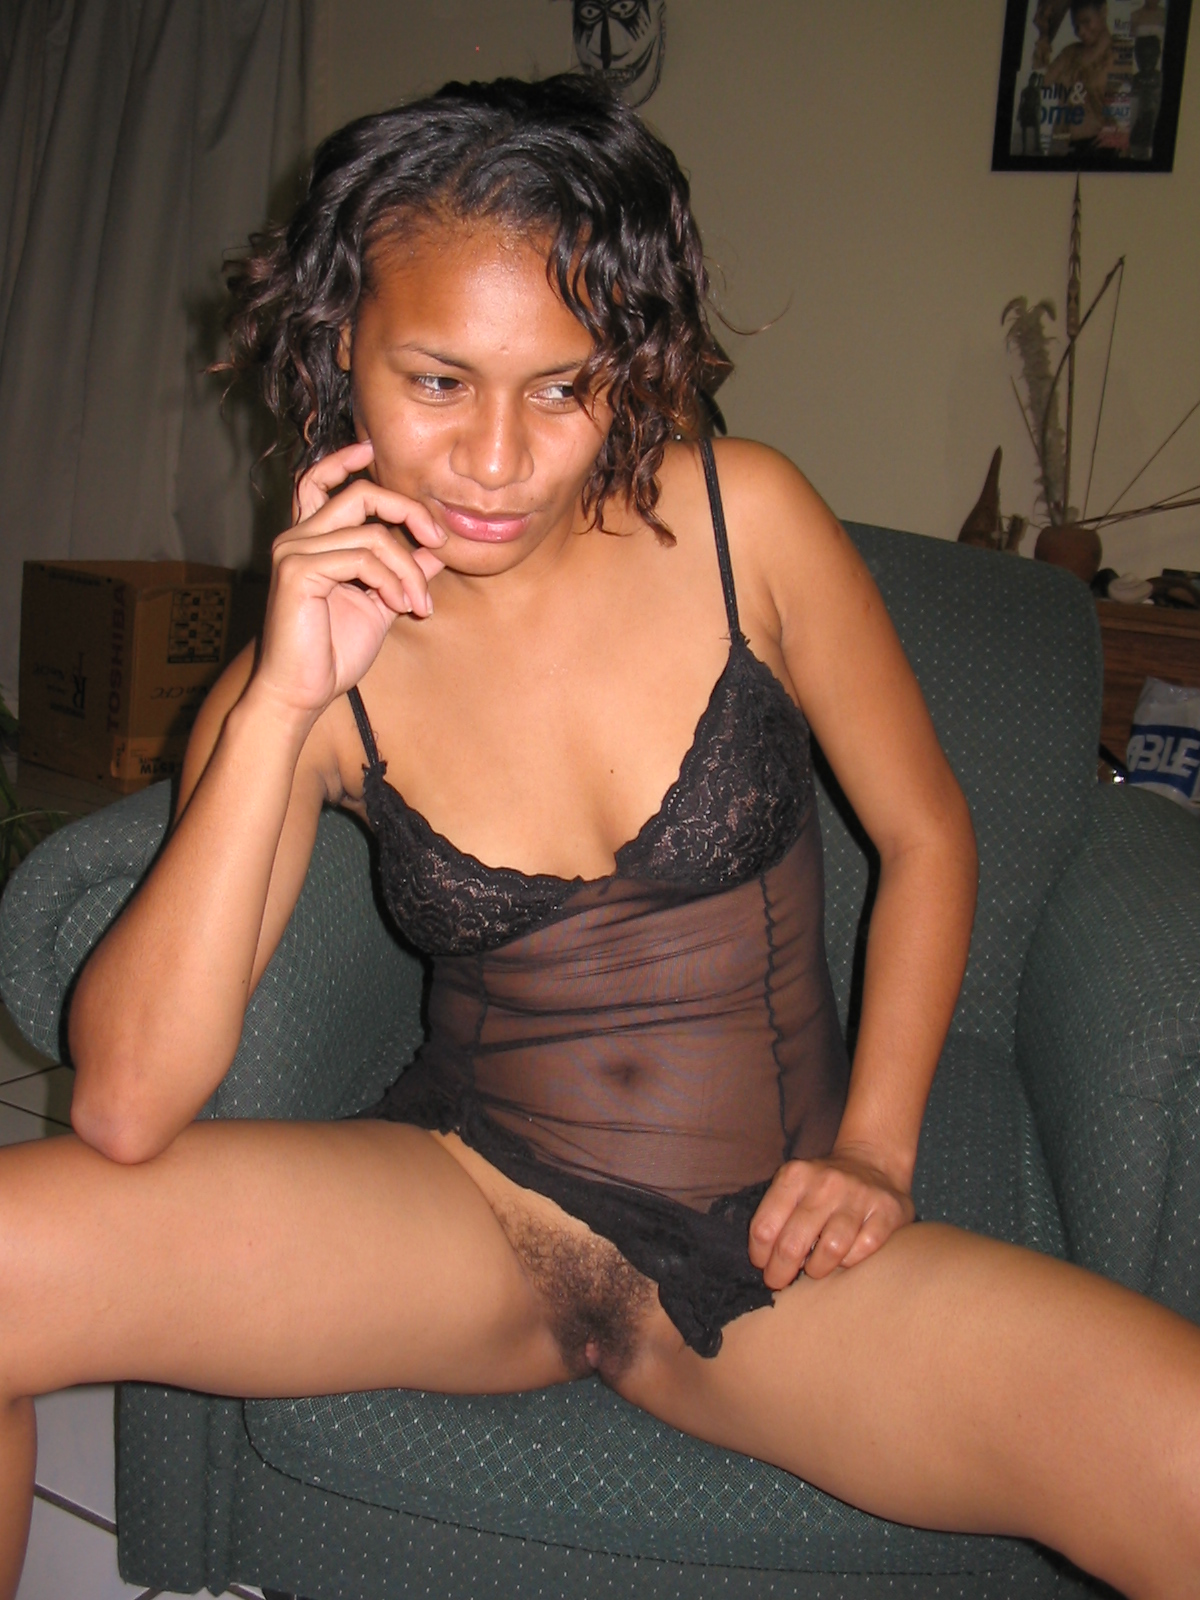 The best: papua new guinea girls on facebook for dating